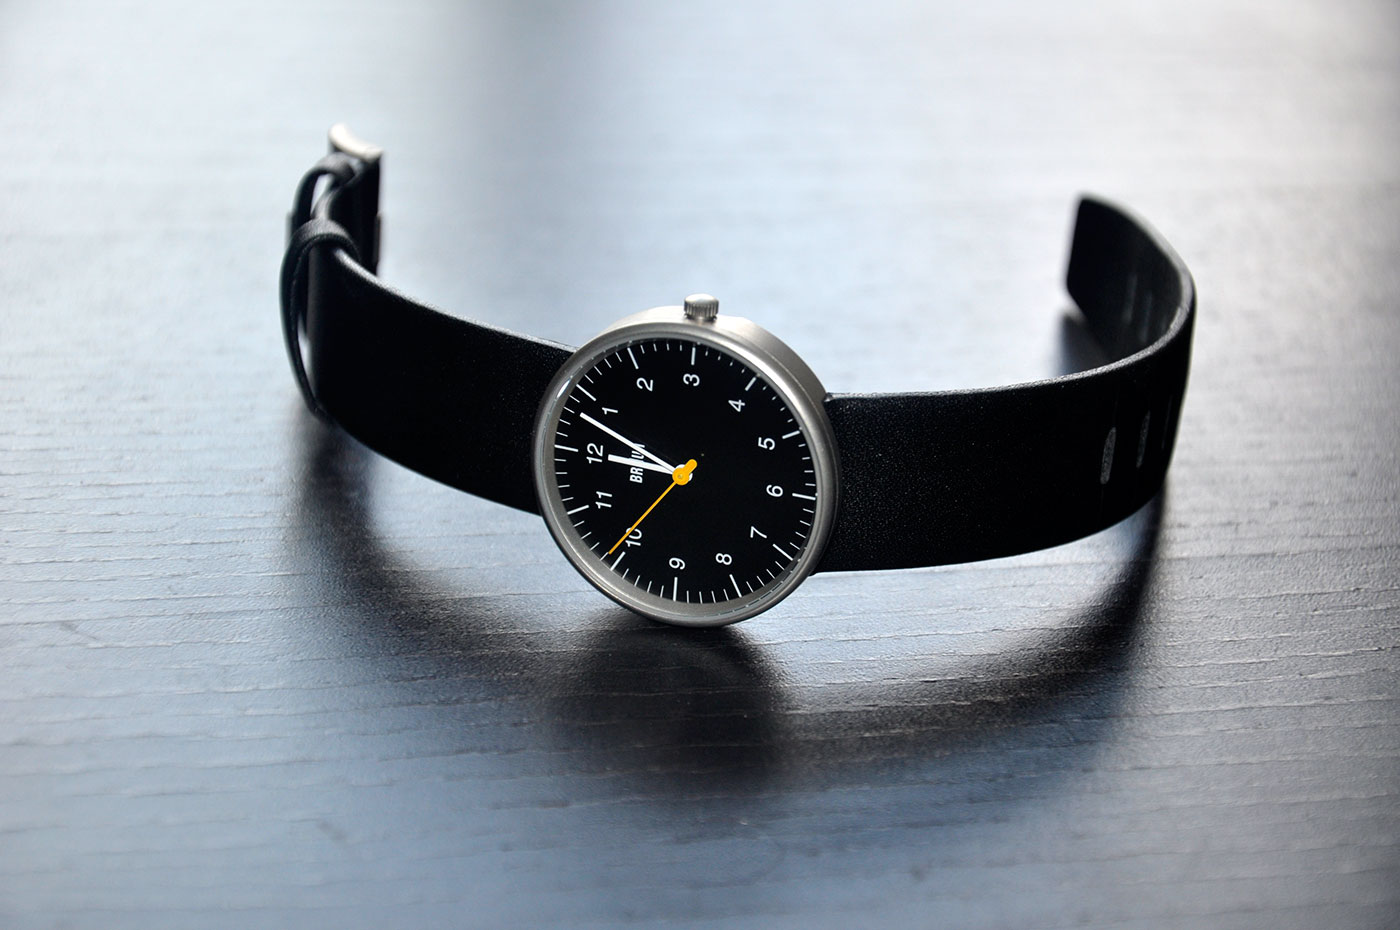 At first sight, the watch is stunning.  Simplistic to its most basic function (and only function), telling the current time.